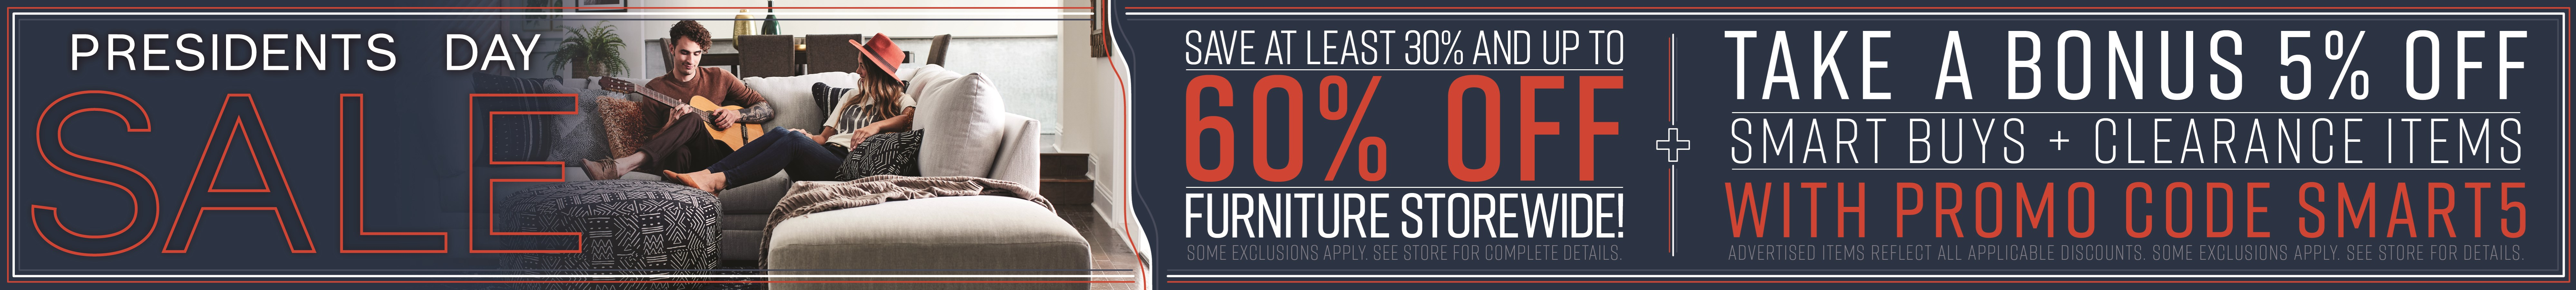 Furniture & ApplianceMart Presidents Day Sale